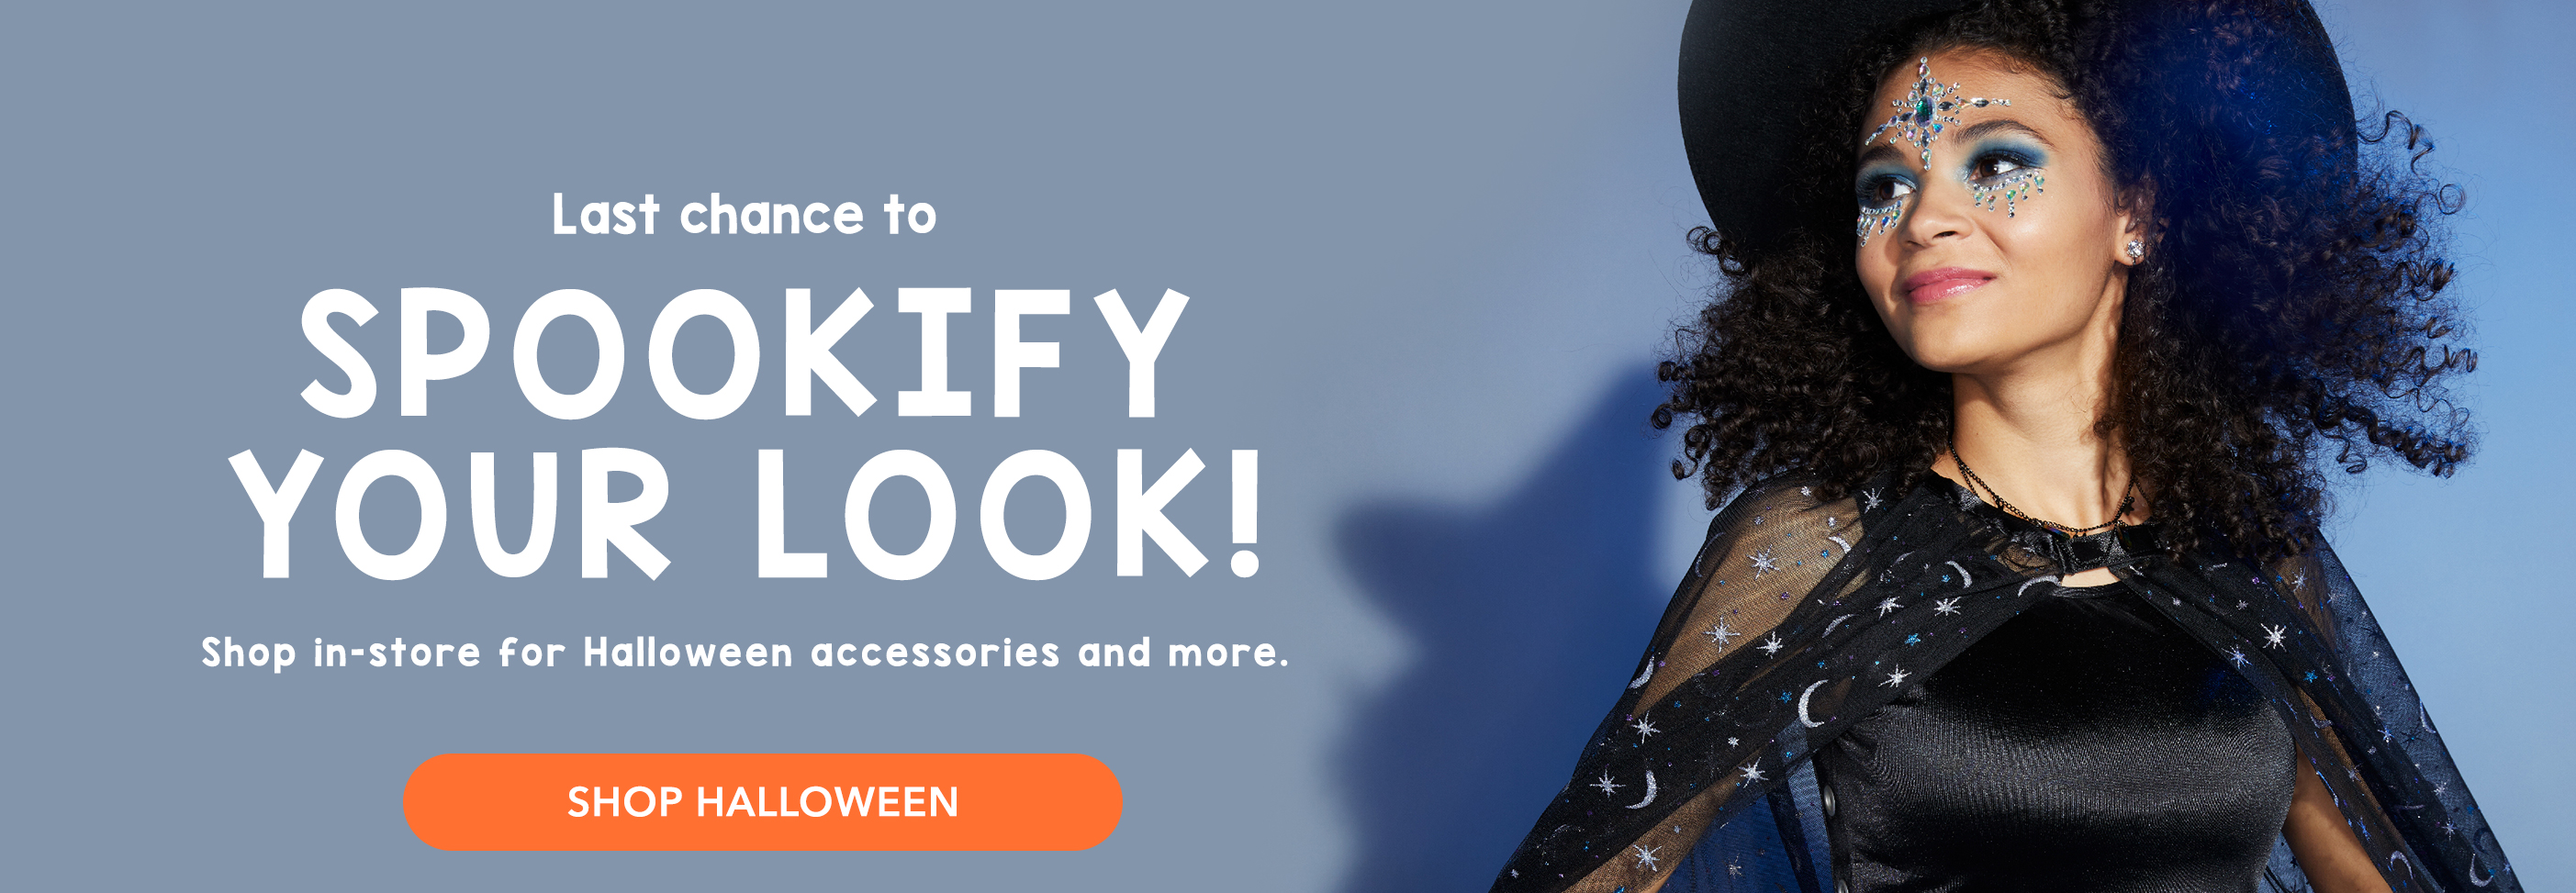 Last chance to SPOOKIFY your look! Shop in-store for Halloween accessories and more. SHOP HALLOWEEN